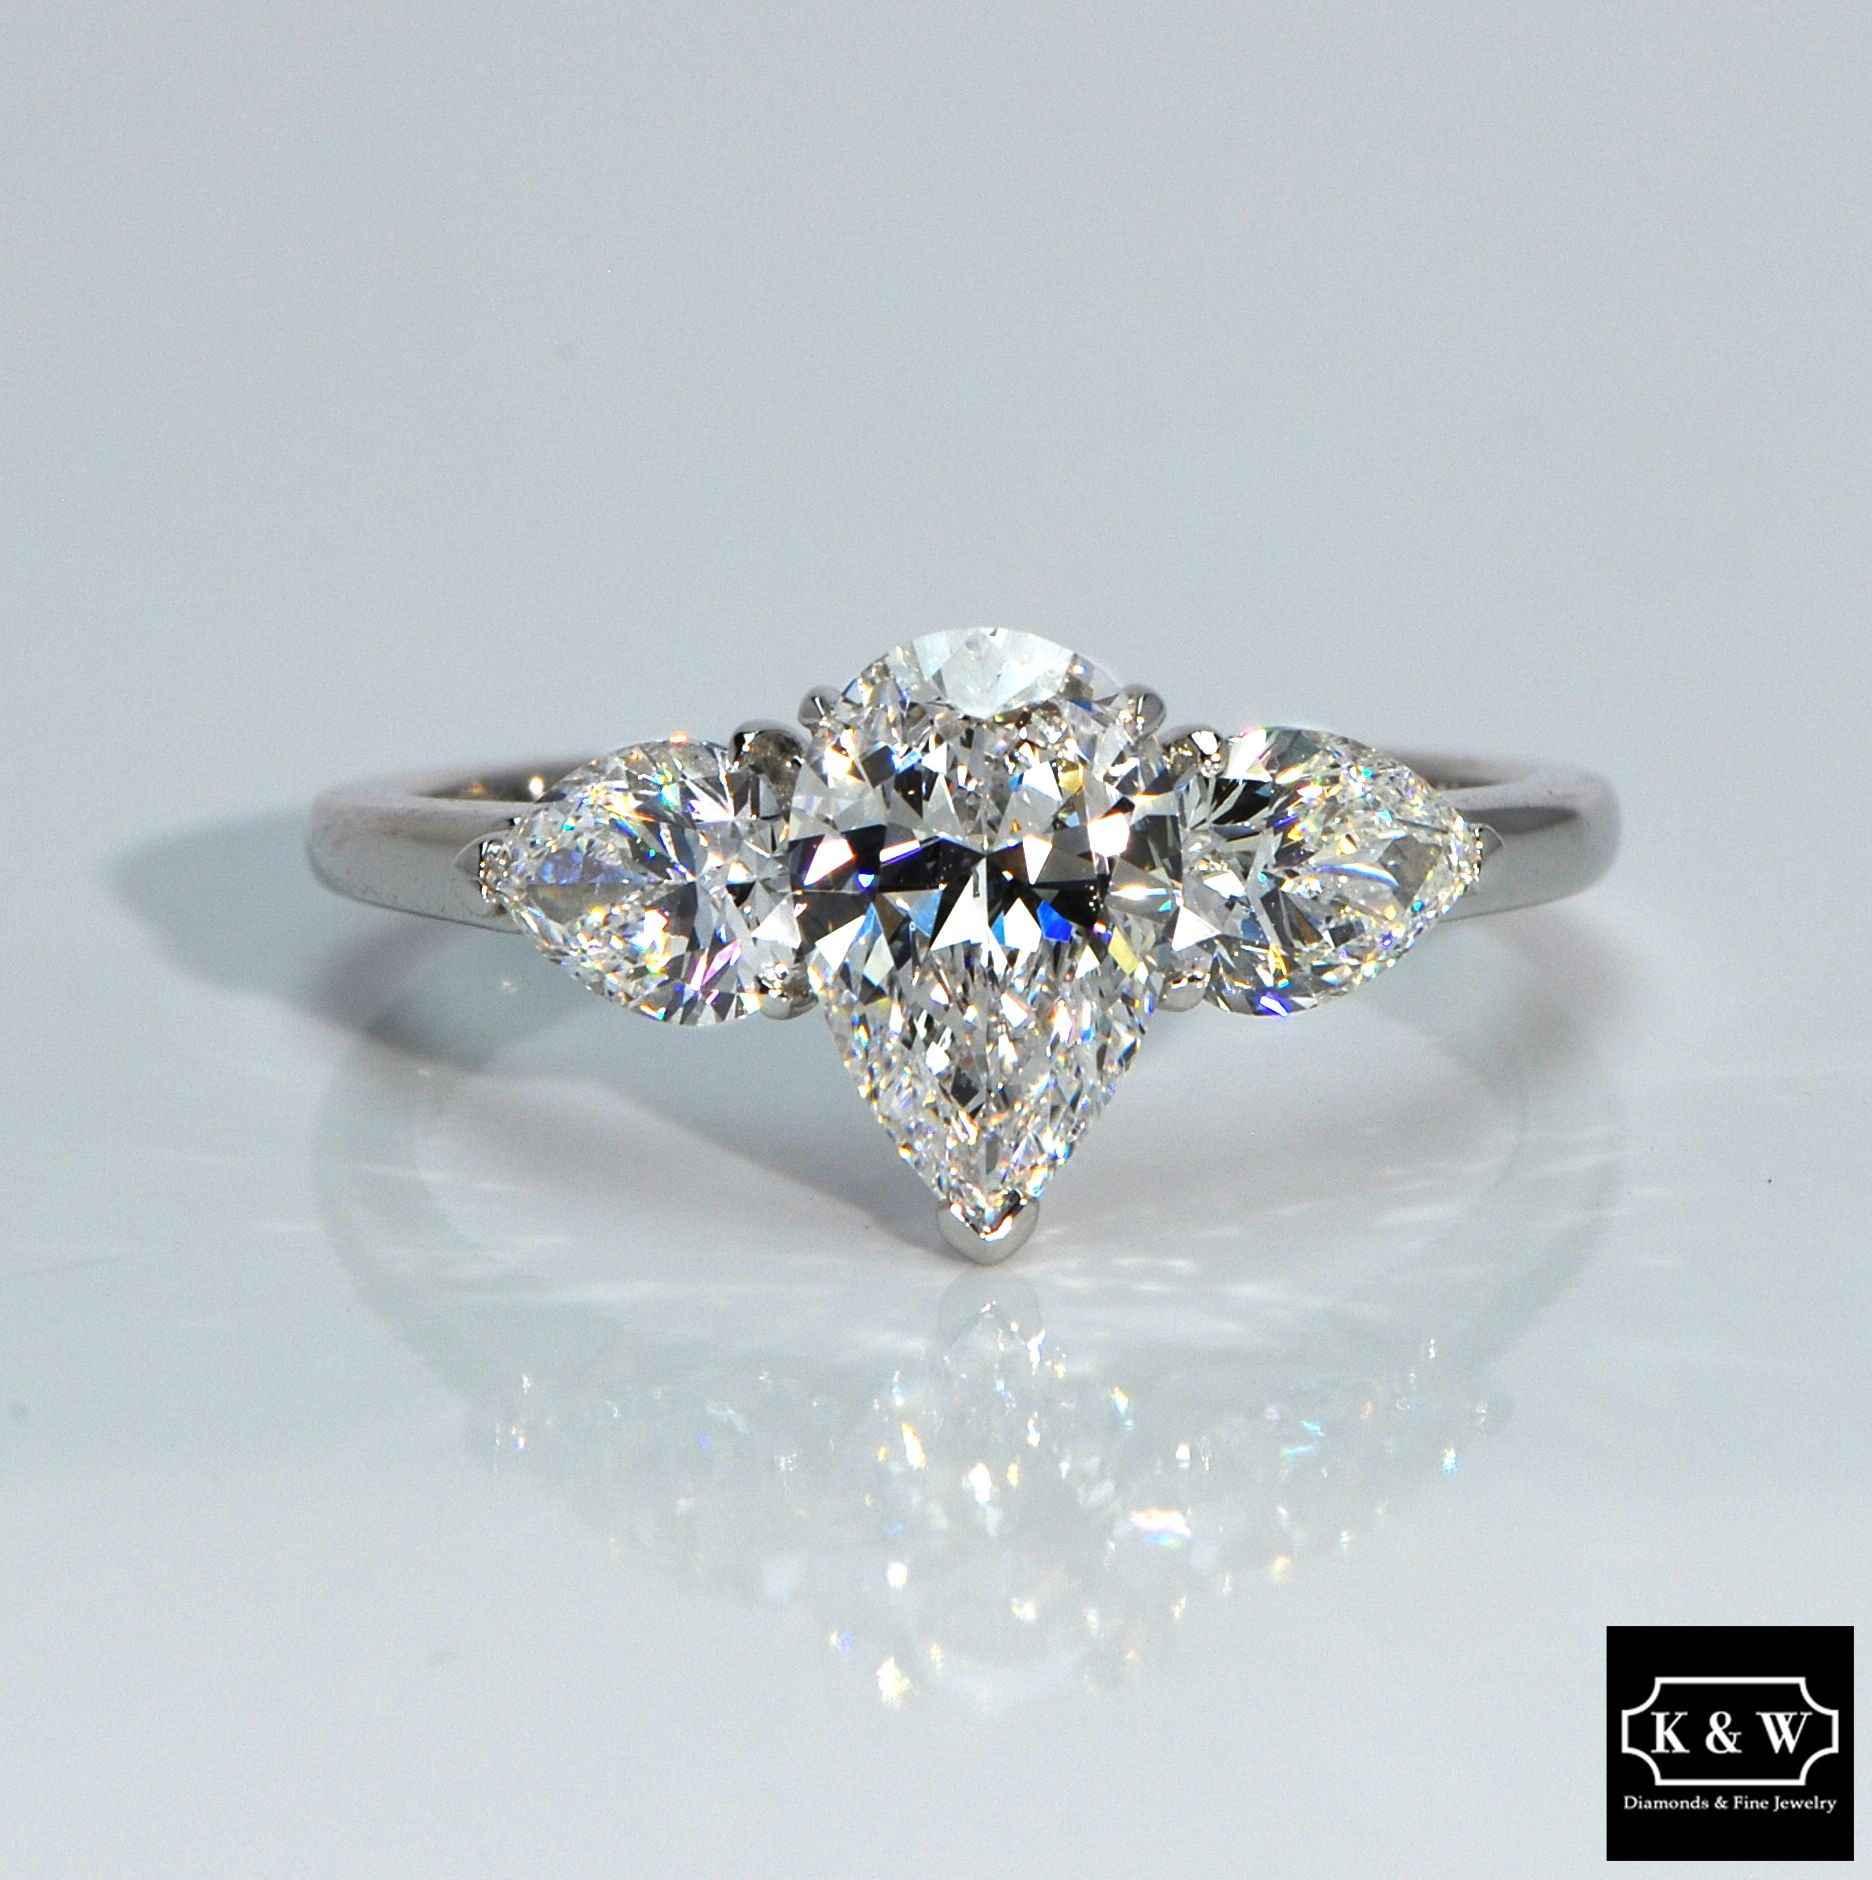 This ThreeStone PearCut DiamondRing Has An Intensity Within It Like Fire And Ice IceThree Stone Engagement Rings